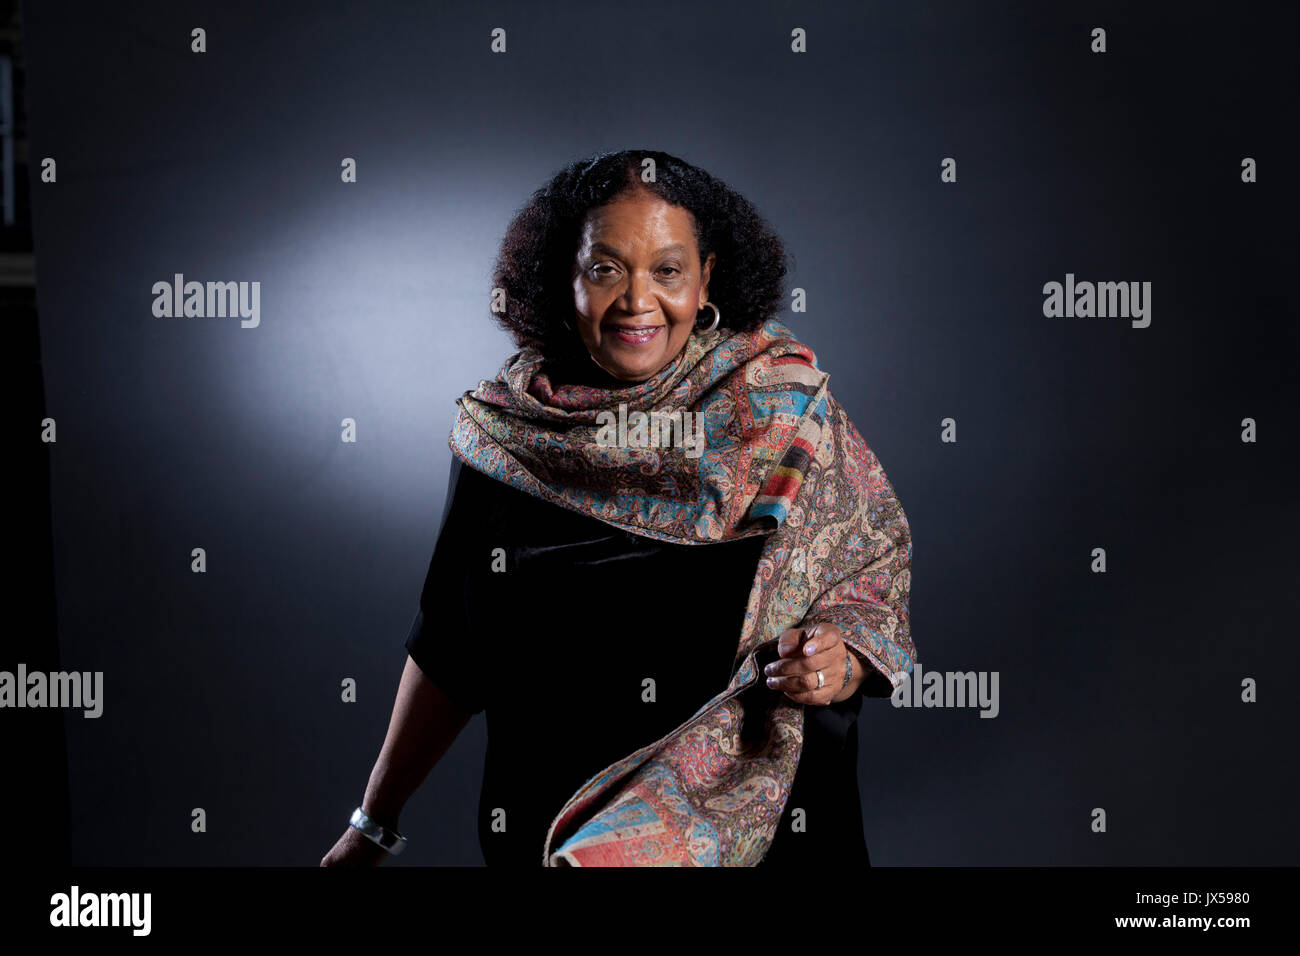 Edinburgh, UK. 14th August 2017. Lorna Goodison, the Jamaican poet, appearing at the Edinburgh International Book Stock Photo